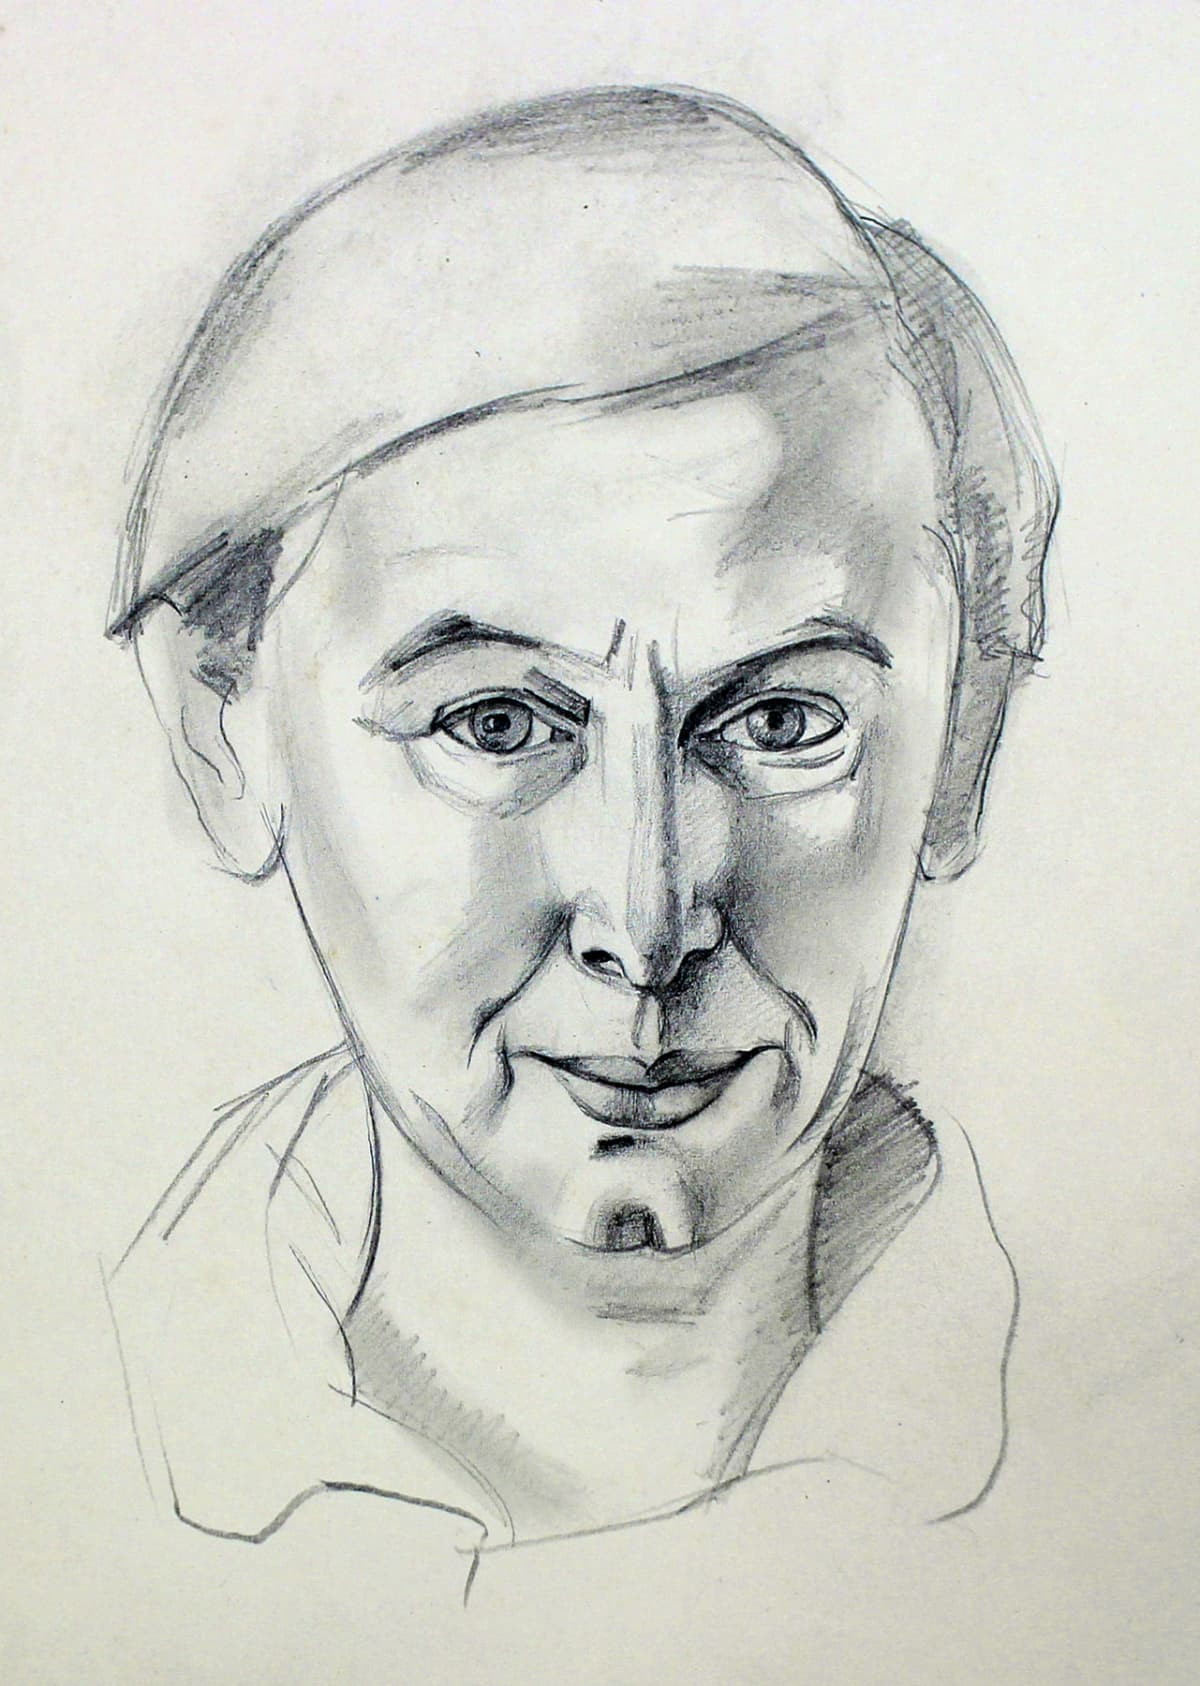 Rita Angus Untitled [Self Portrait], n.d. Pencil on paper 9.1 x 5.9 in 23 x 15 cm